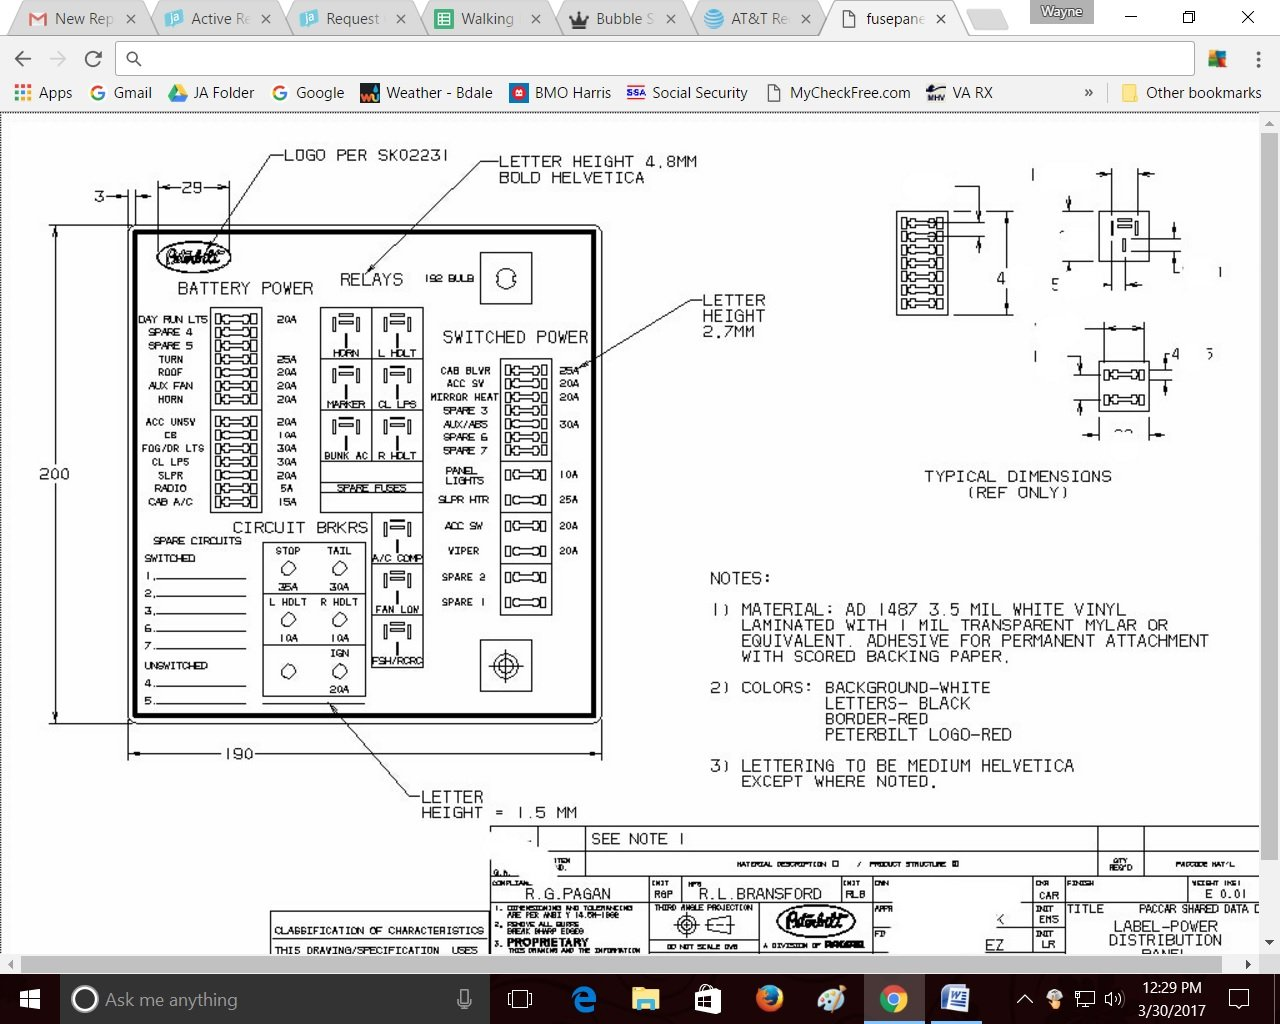 wiring diagram for a 1997 peterbilt semi peterbilt 3782000 kenworth w900 wiring diagram new